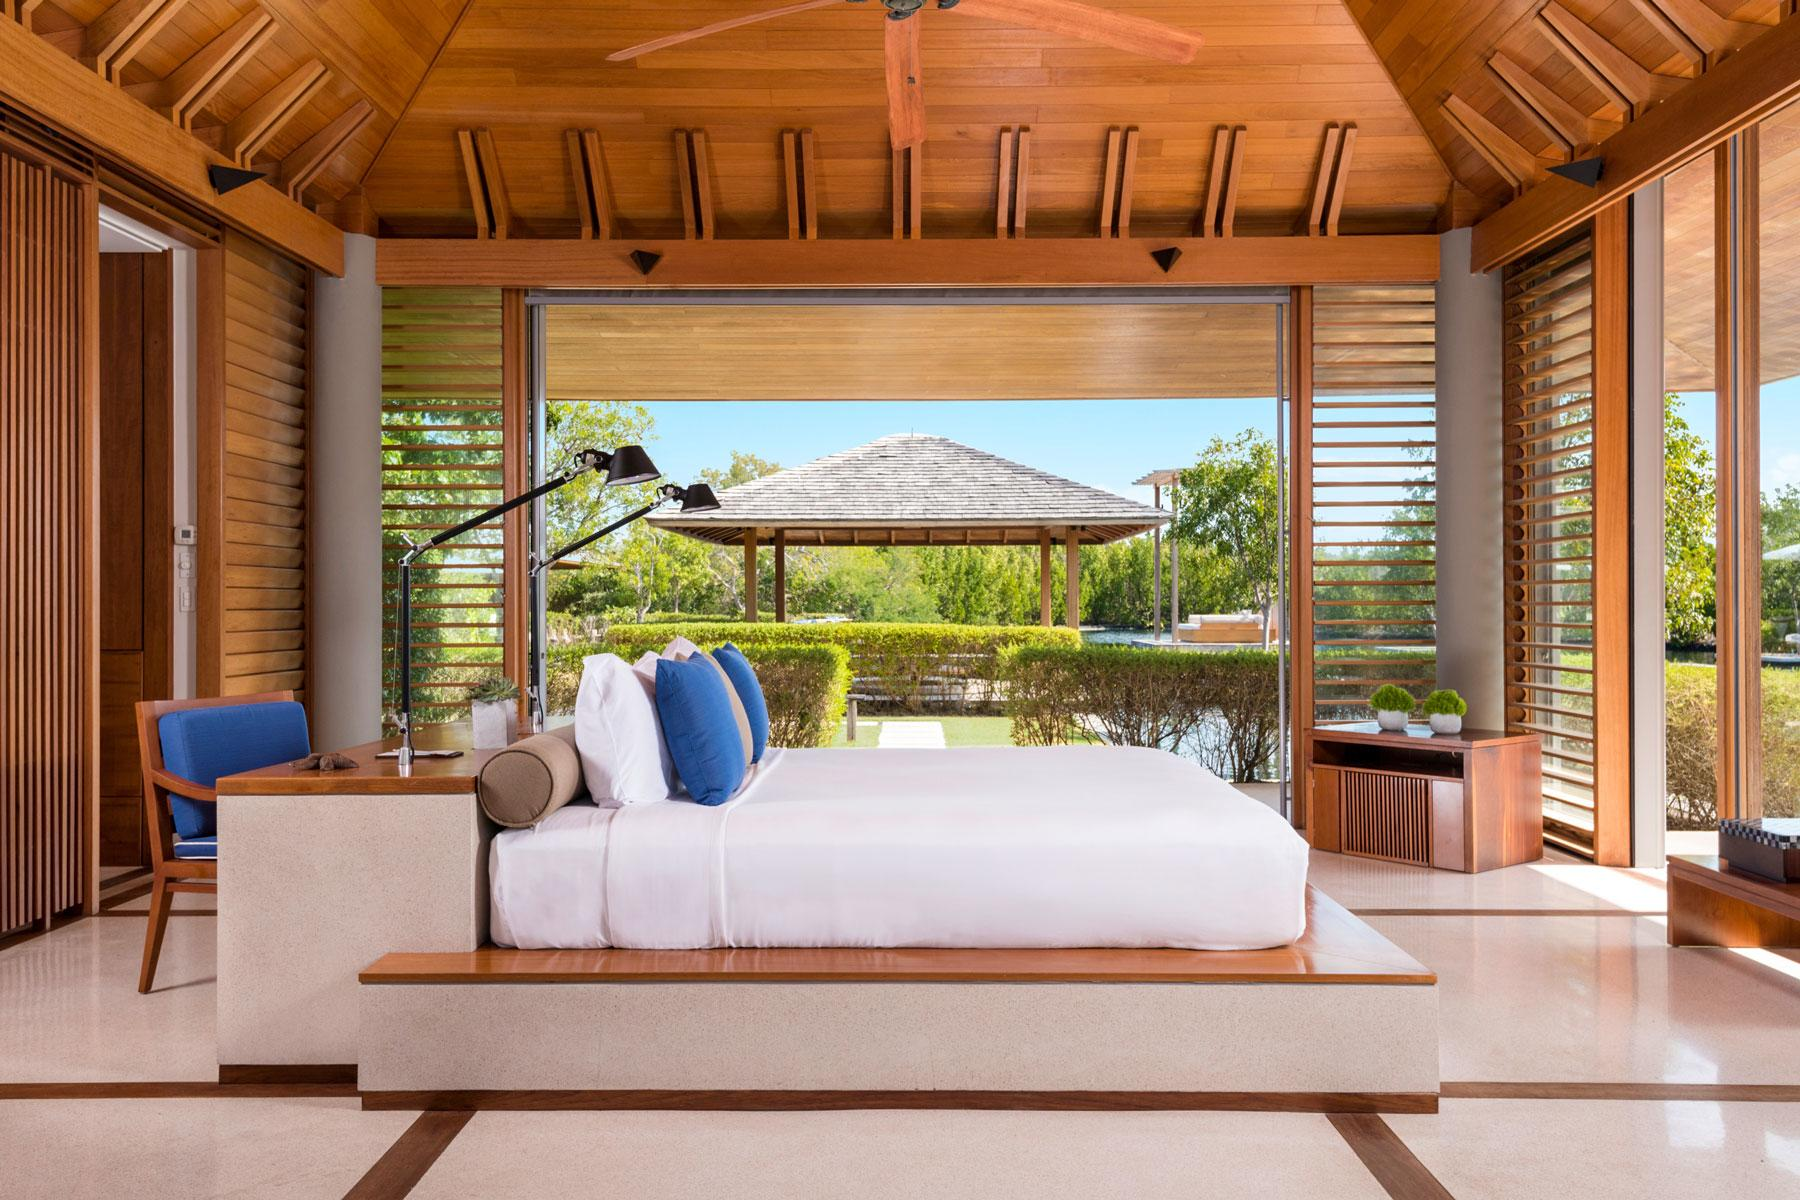 The Best Hotels in the Caribbean